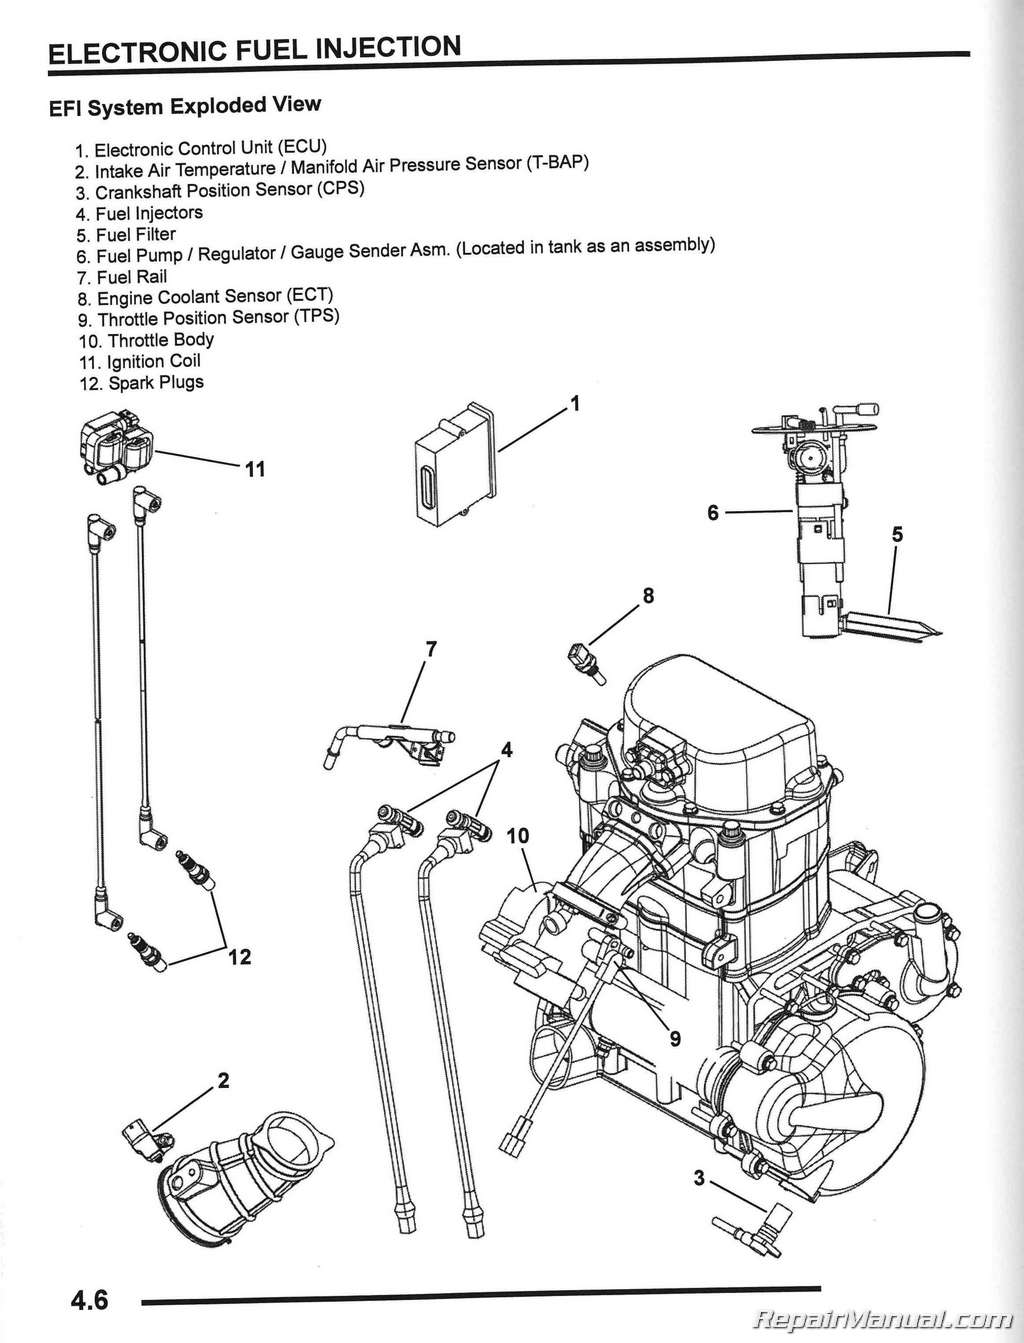 2008 Polaris Ranger Rzr 800 Side By Service Manual Auto Meter Fuel Pressure Gauge Wiring Diagram Free Download